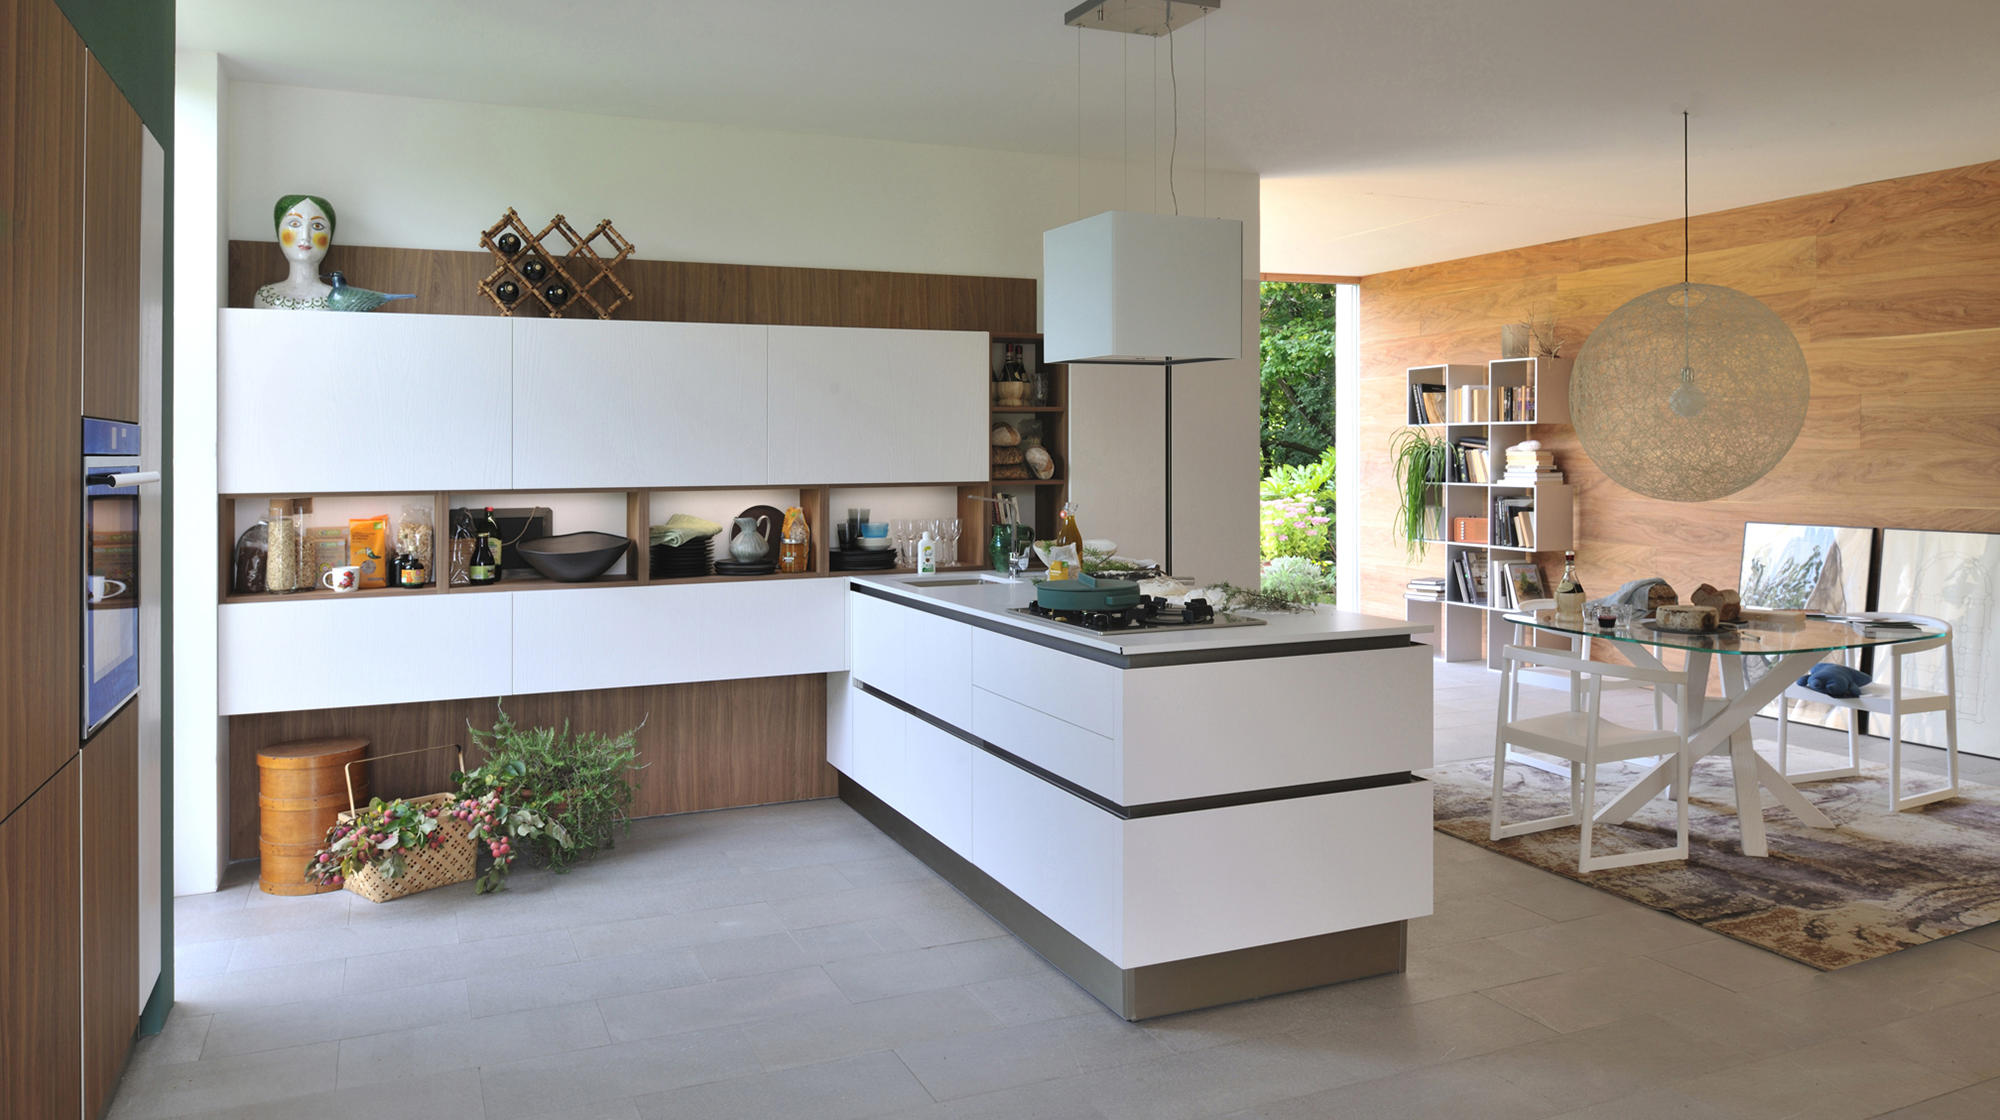 Oyster pro fitted kitchens from veneta cucine architonic for Home cucine